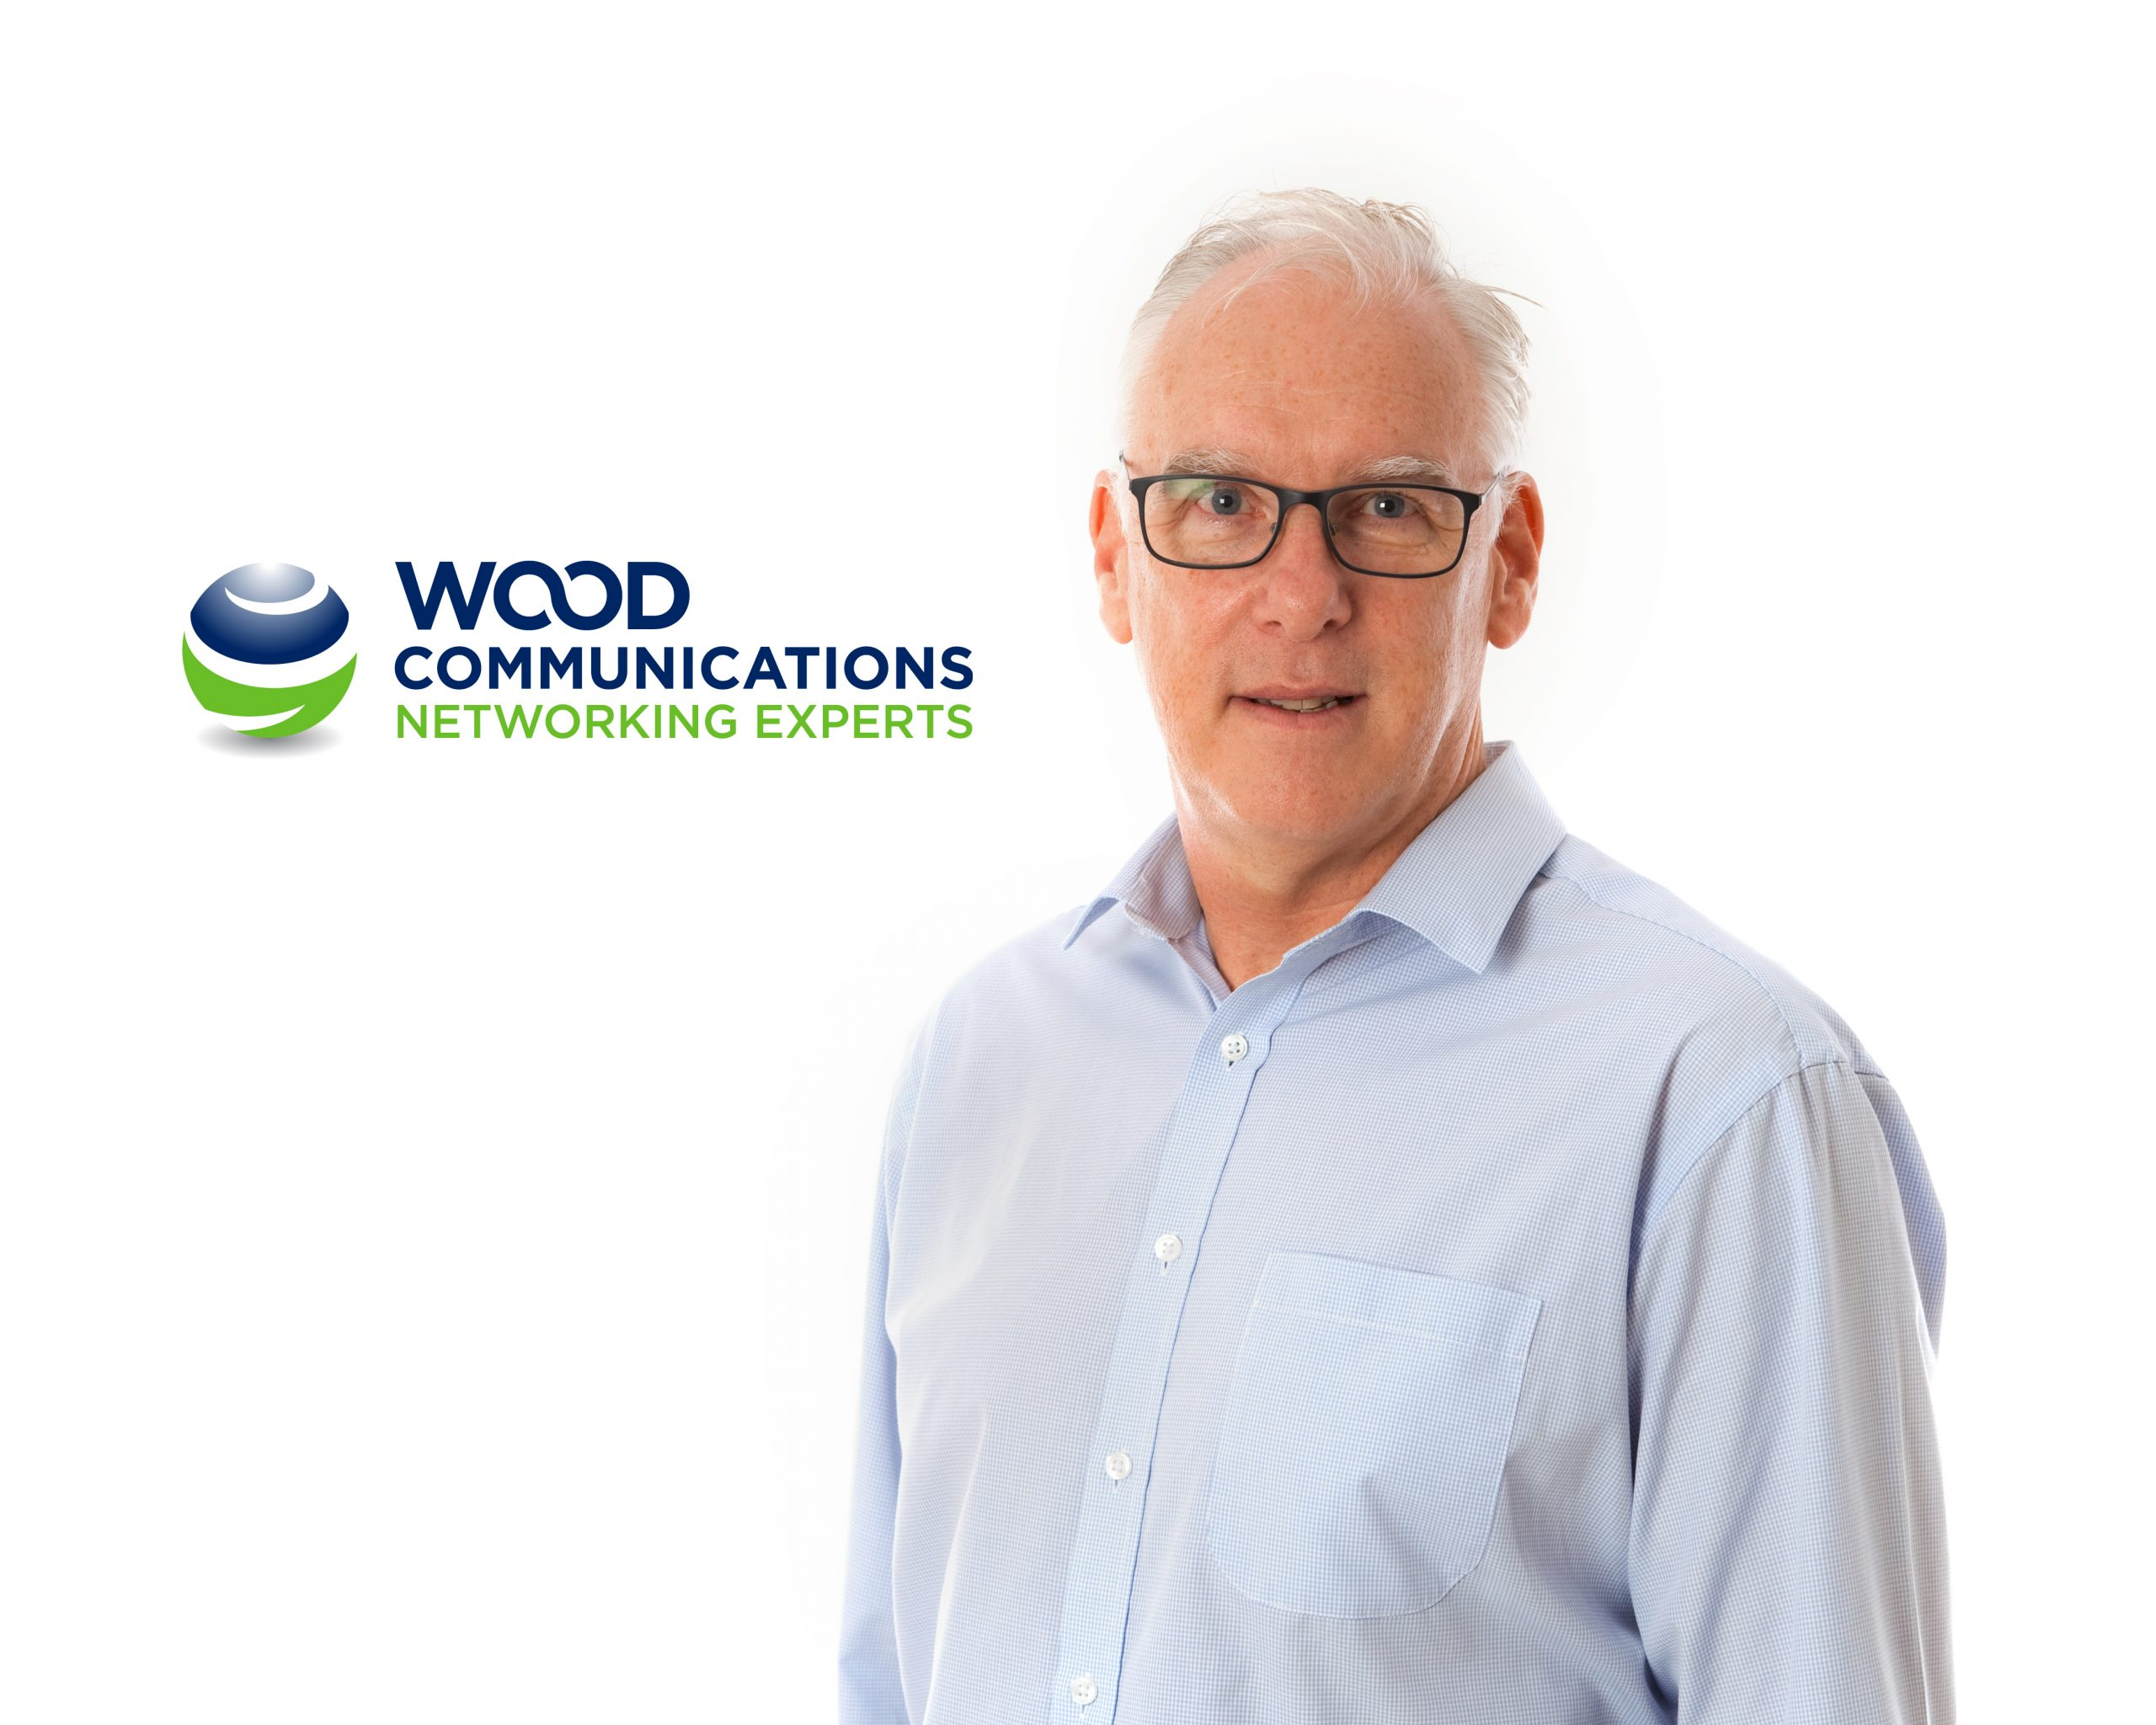 Conor Creagh - wood communications networking expert